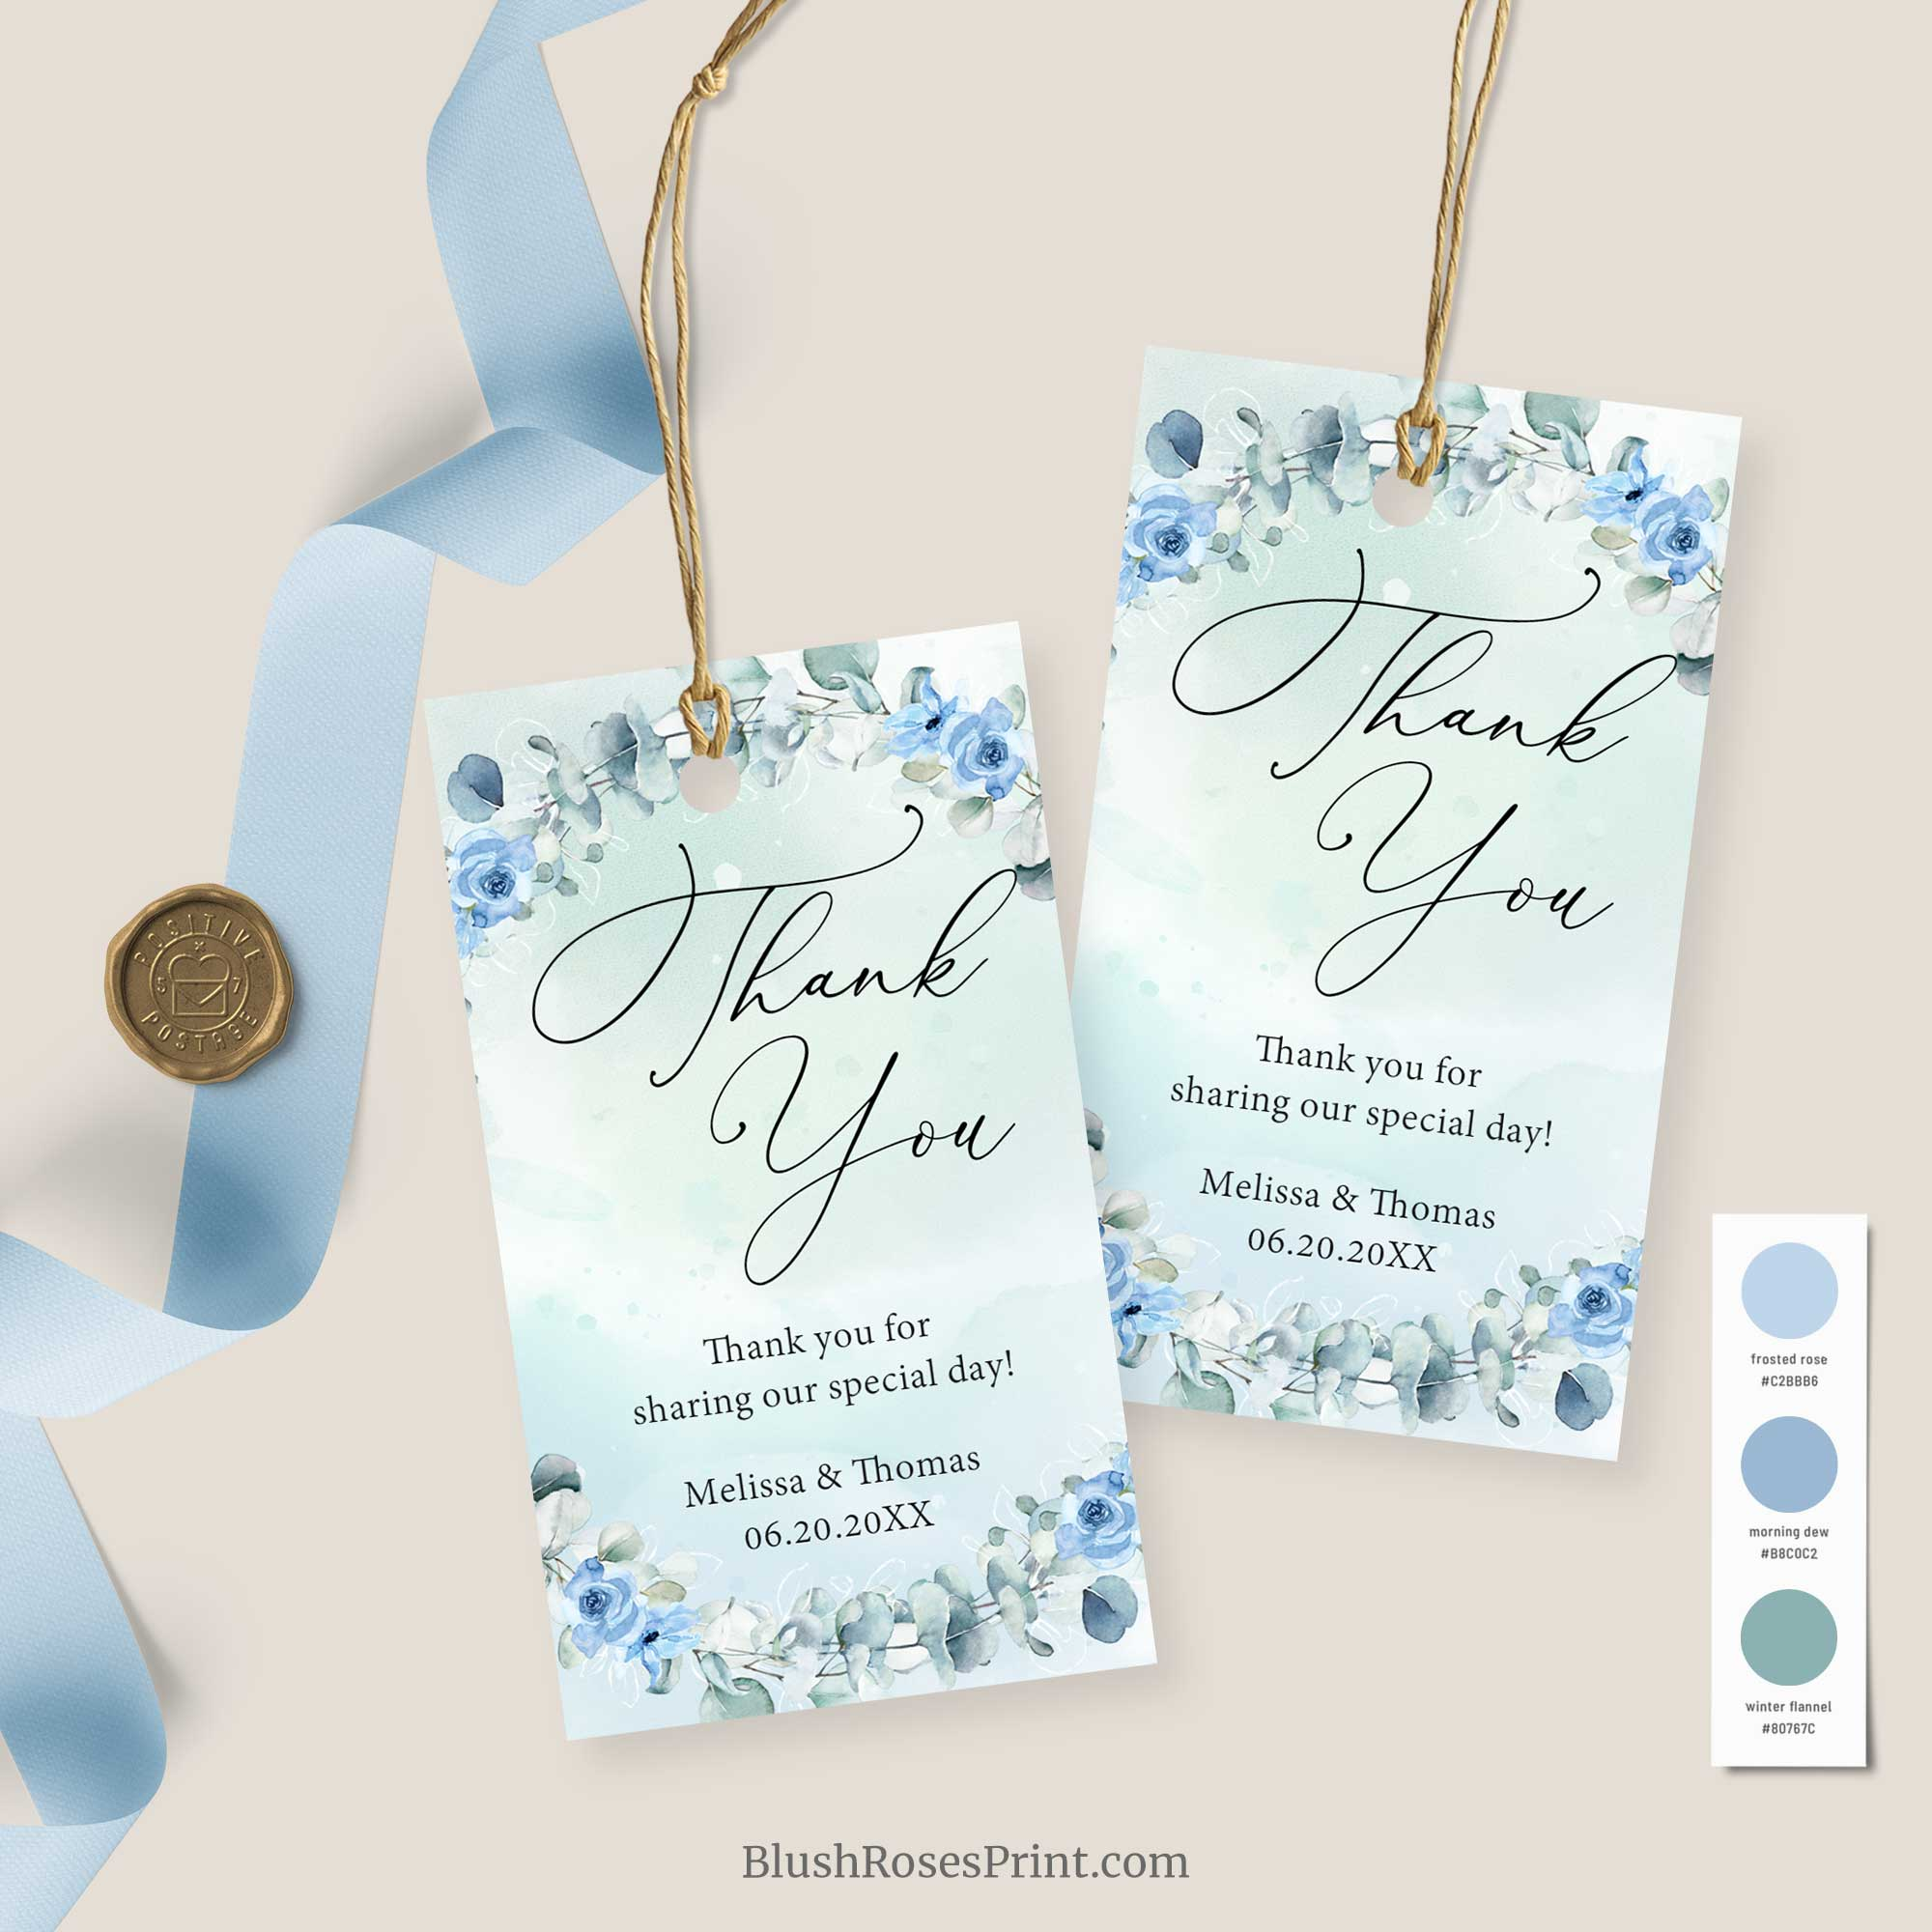 JOYS - Dusty Blue Wedding Gift Tag, INSTANT DOWNLOAD Favor Tag Printable, Wedding Thank You Tag Template, Eucalyptus Greenery Wreath